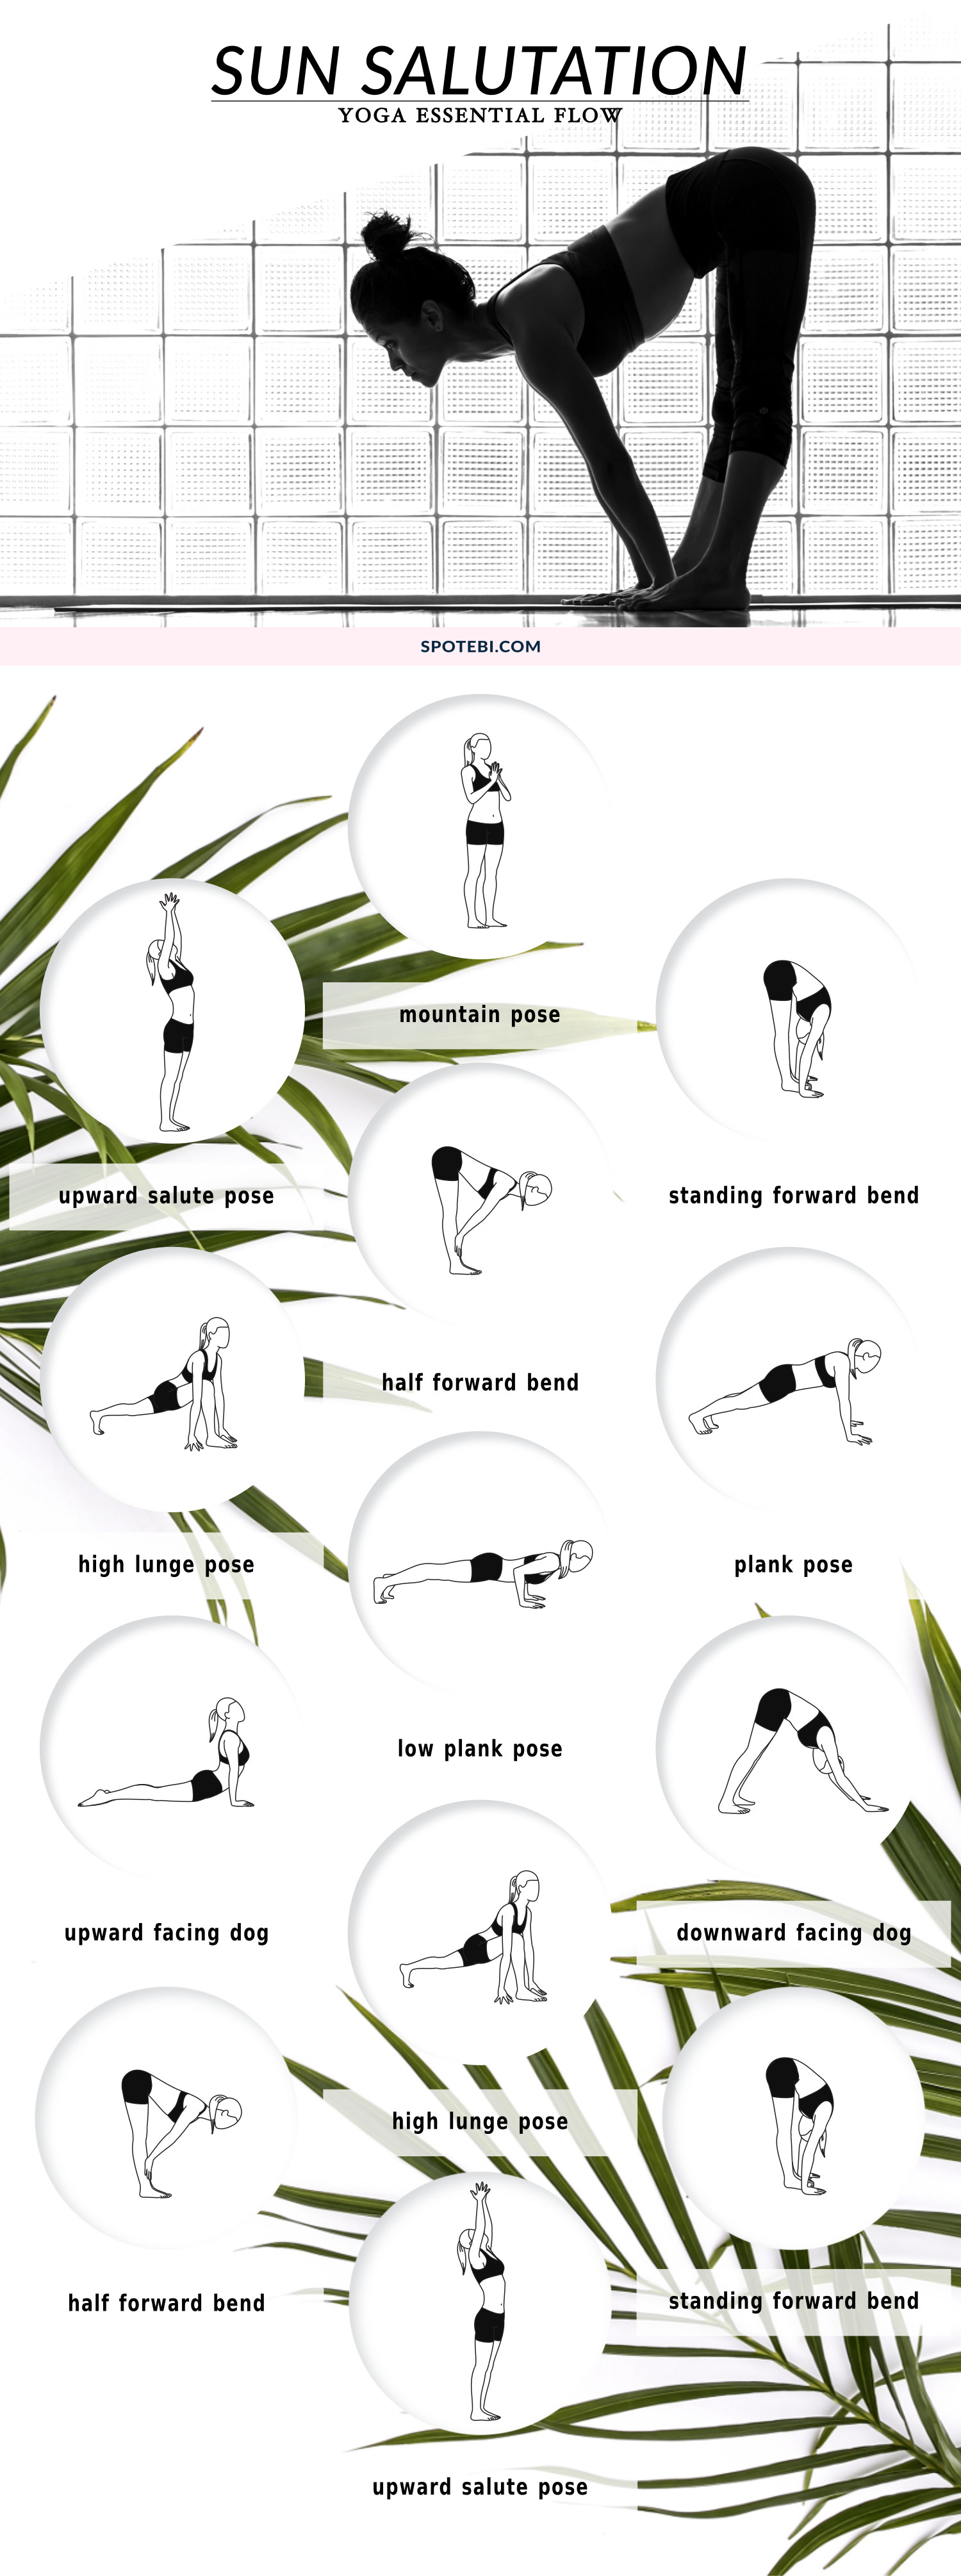 Invigorate the body and elevate the mind with this sun salutation sequence. Coordinate the breath with each posture, and start every morning with this yoga essential flow to feel energized and ready to take on the day! https://www.spotebi.com/yoga-sequences/sun-salutation-flow/